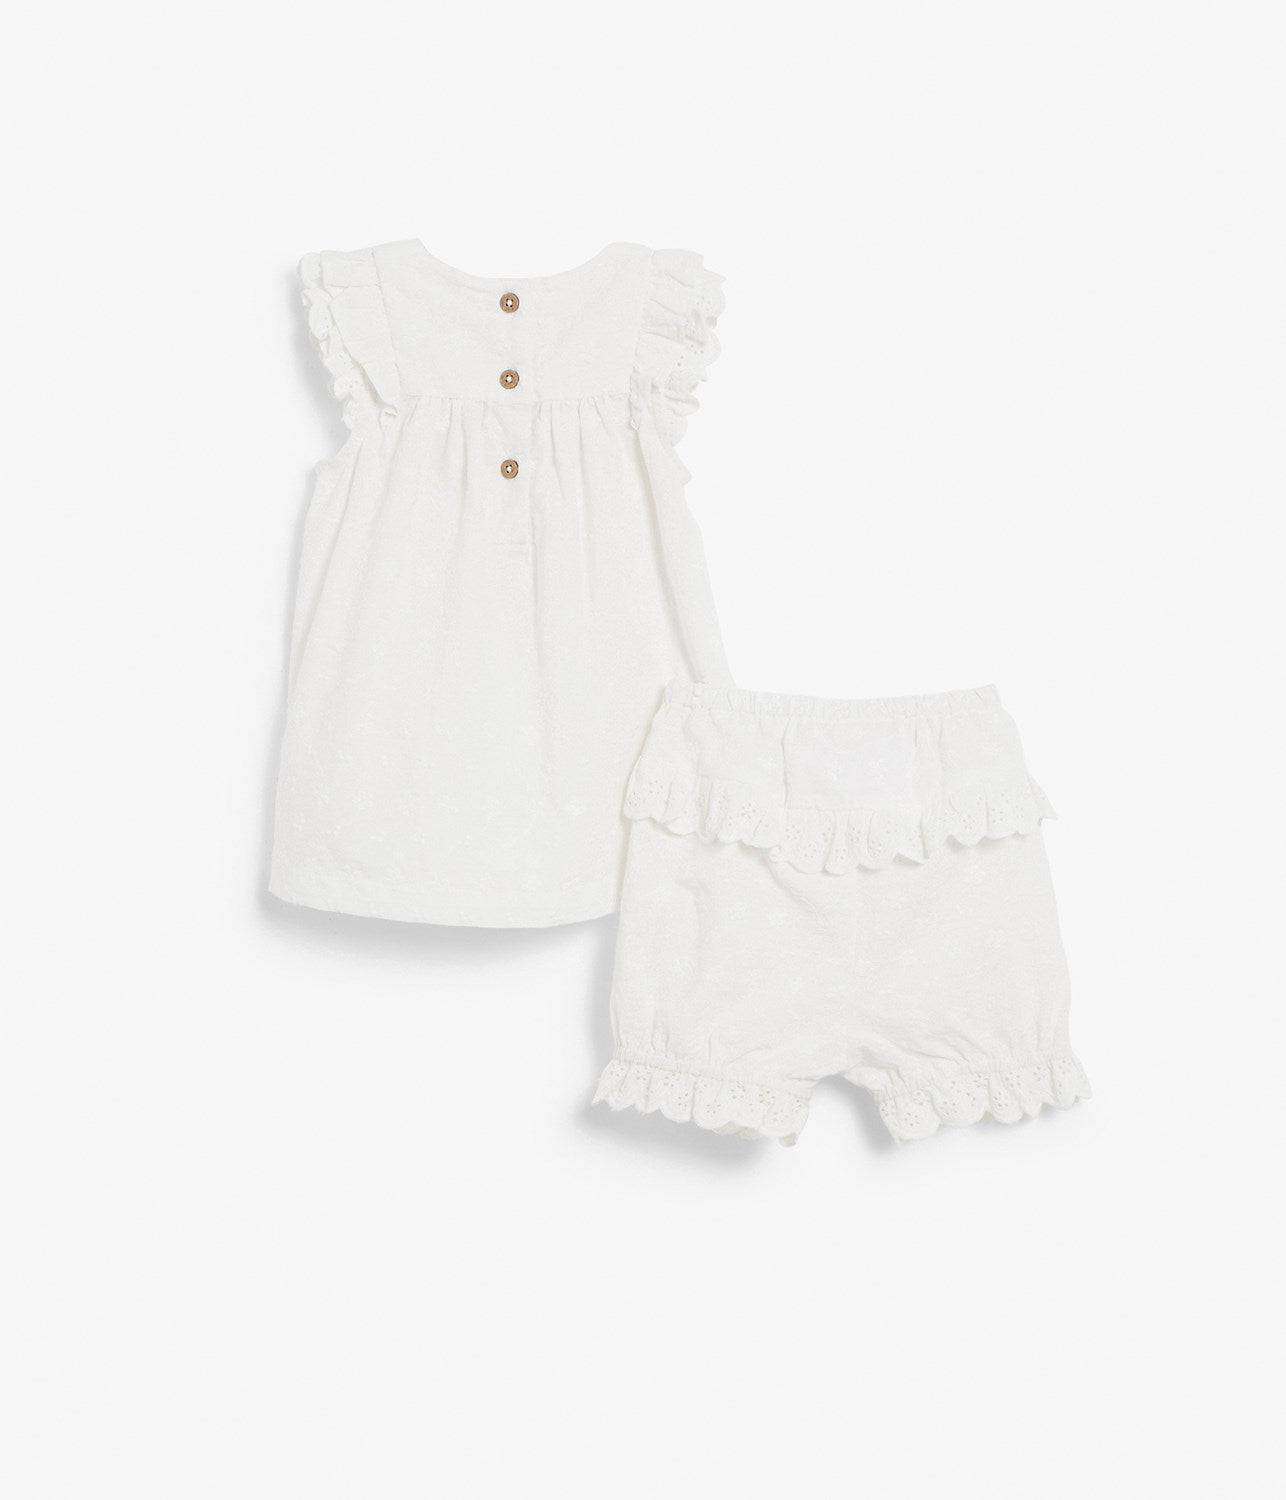 Baby dress with bloomers